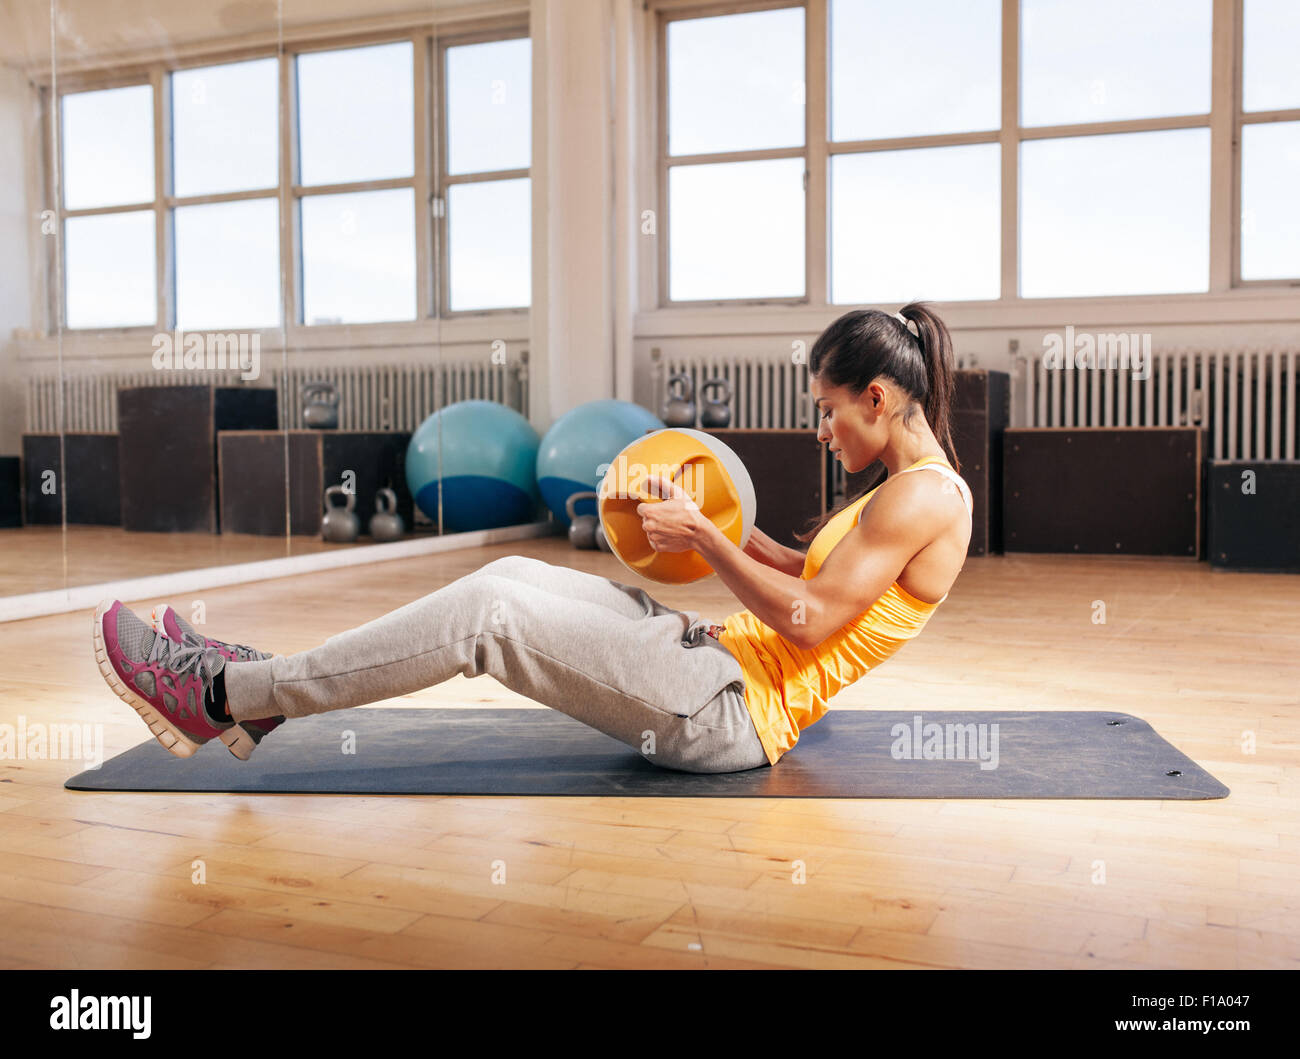 Side view shot of muscular young woman doing crossfit workout using kettlebell. Fitness model exercising in gym. - Stock Image